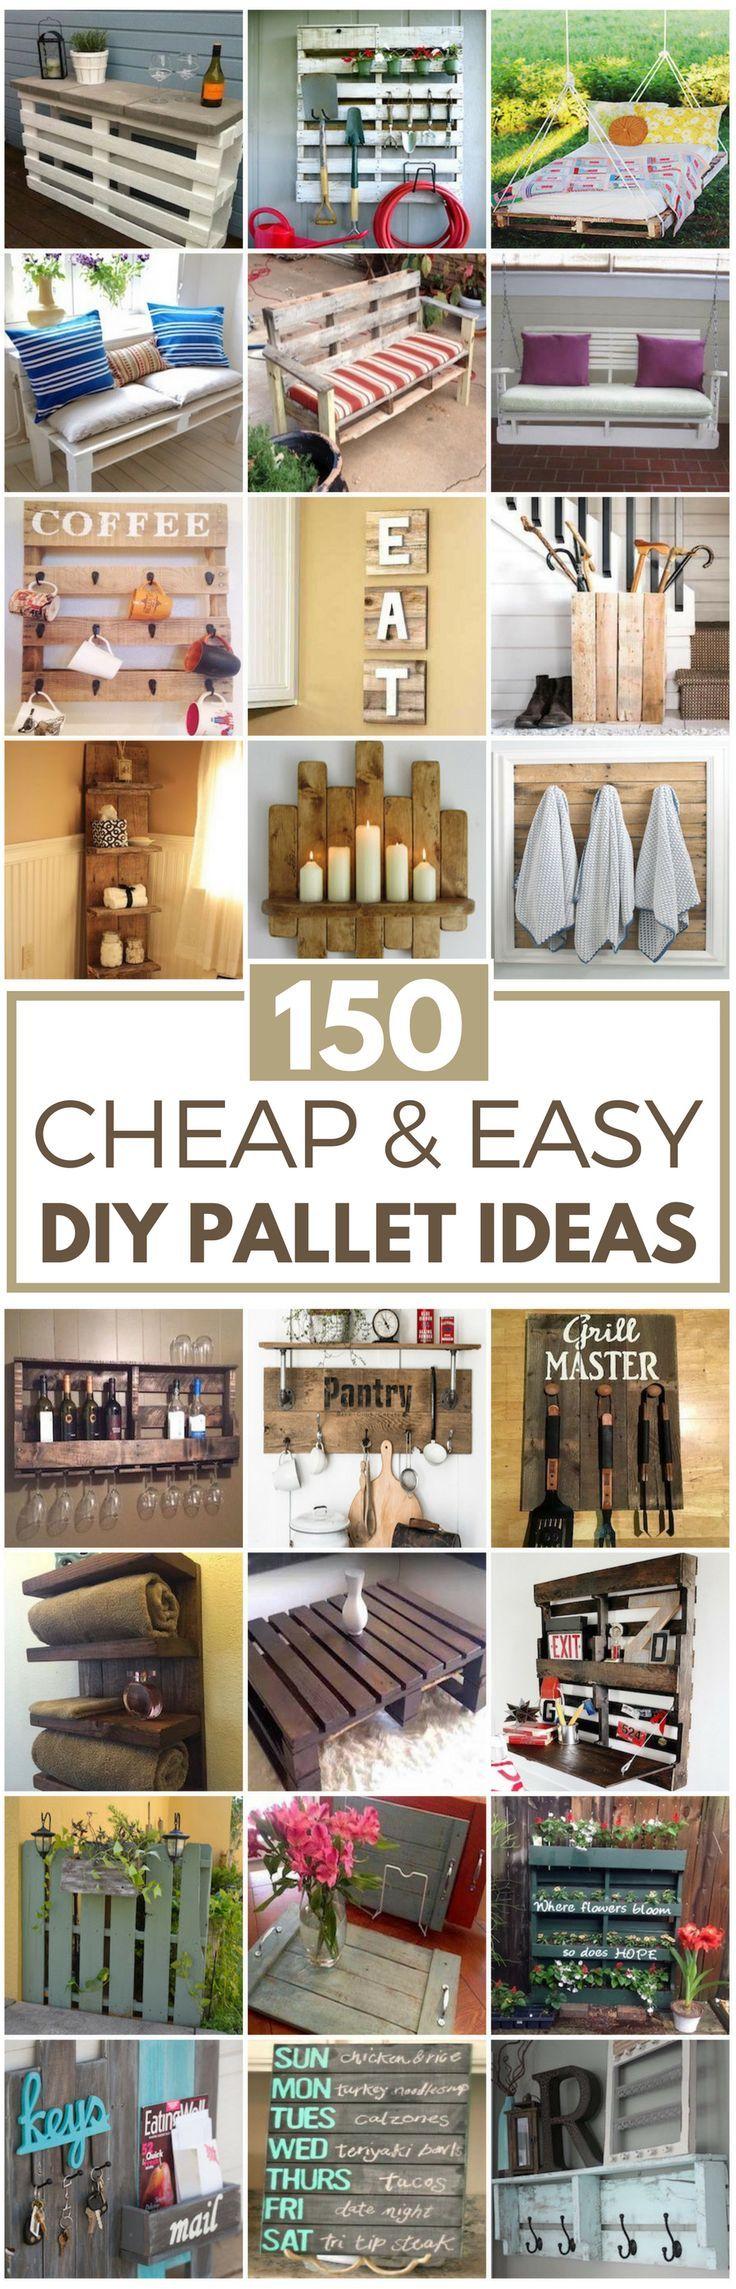 150 Cheap Easy Pallet Projects Pallet Projects Easy Pallet Diy Pallet Crafts